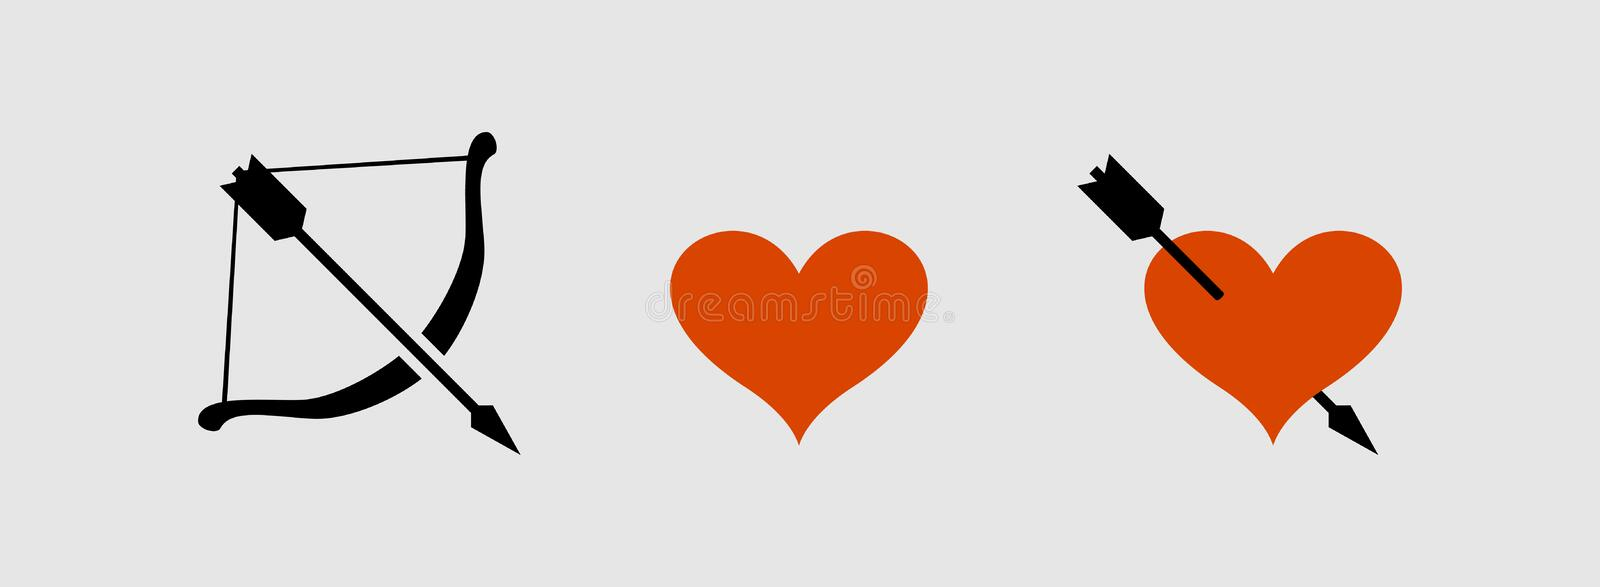 Bow arrow and heart icons. Vector illustration vector illustration